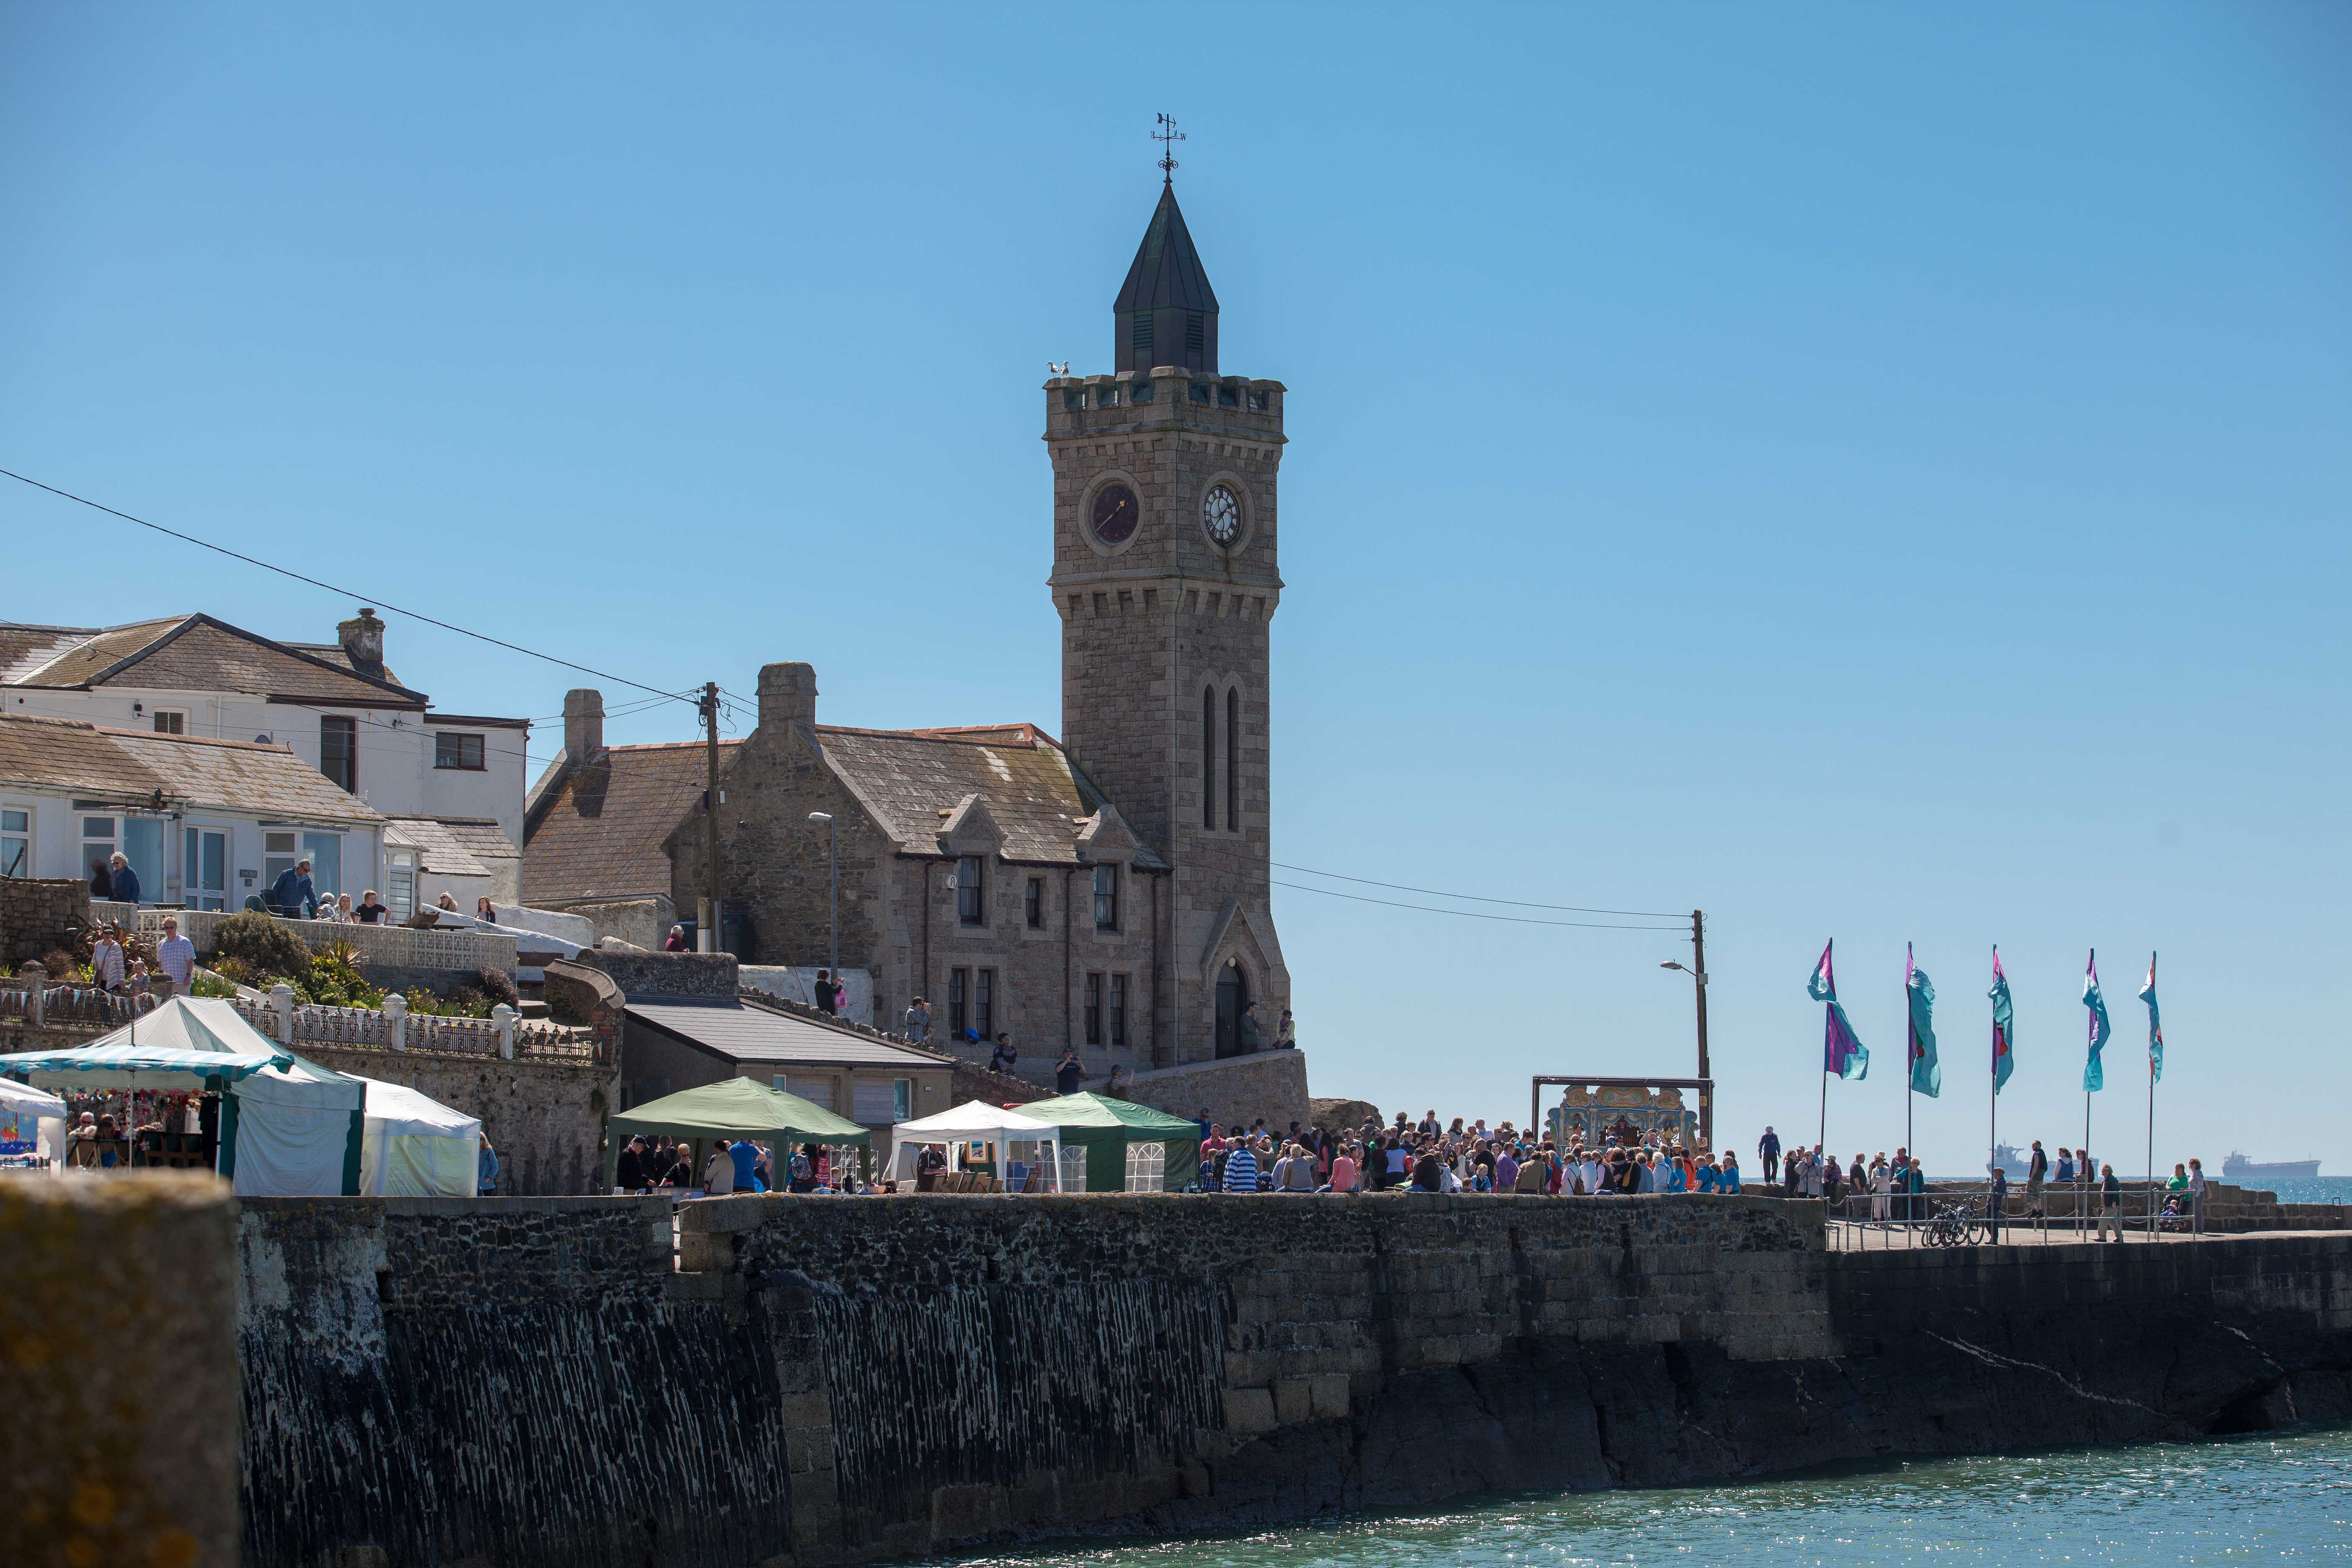 Porthleven Town Council